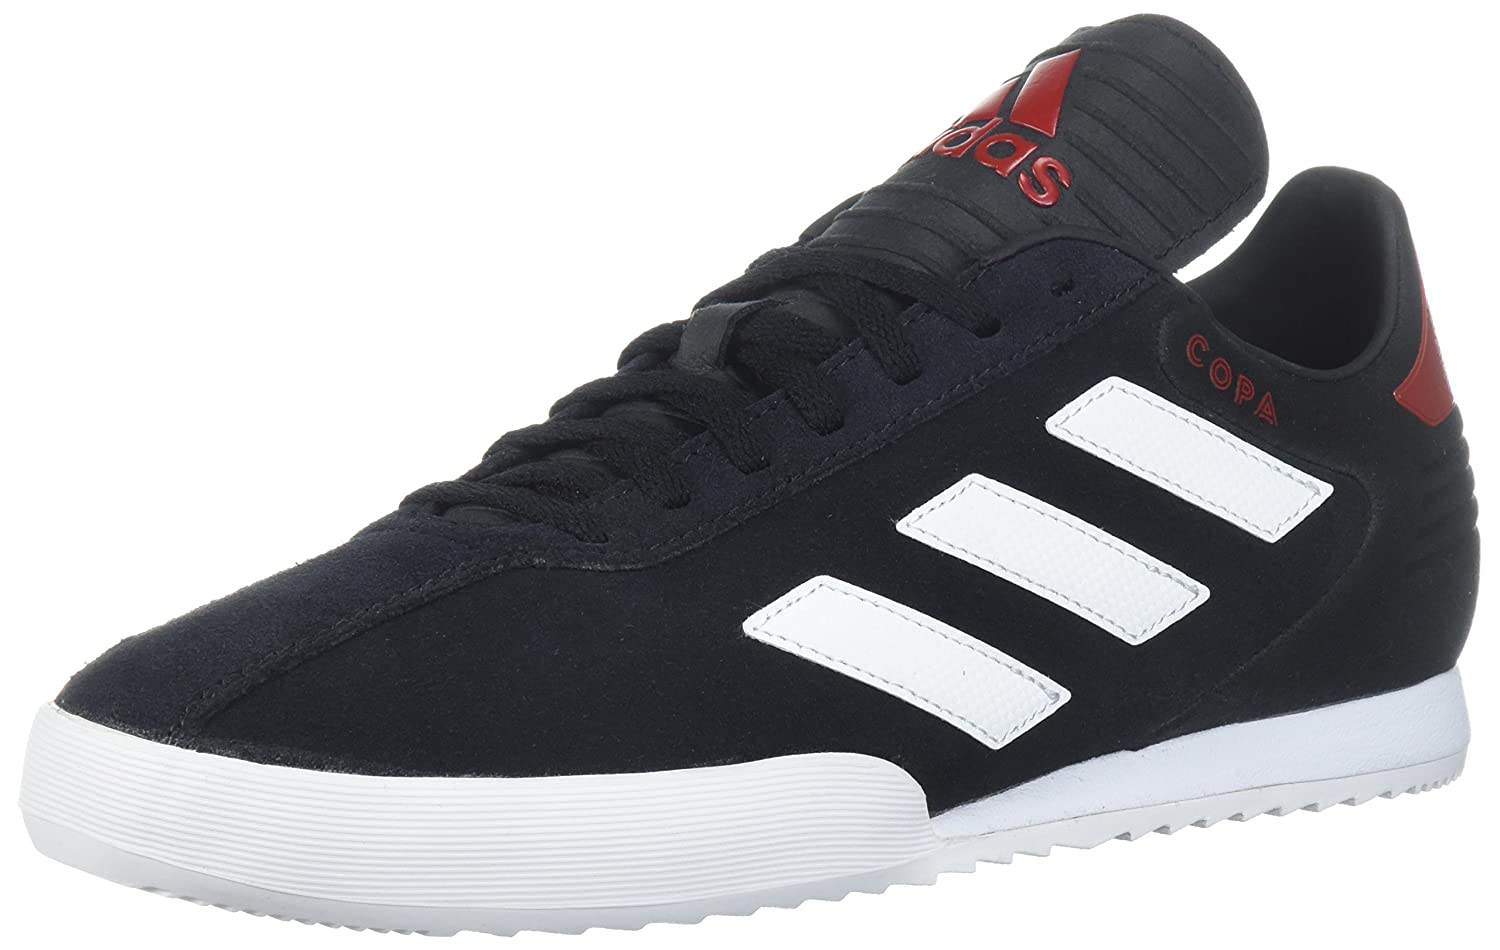 adidas Men's Copa Super Soccer Shoe B071LQ38ND 8 D(M) US|Black/White/Power Red